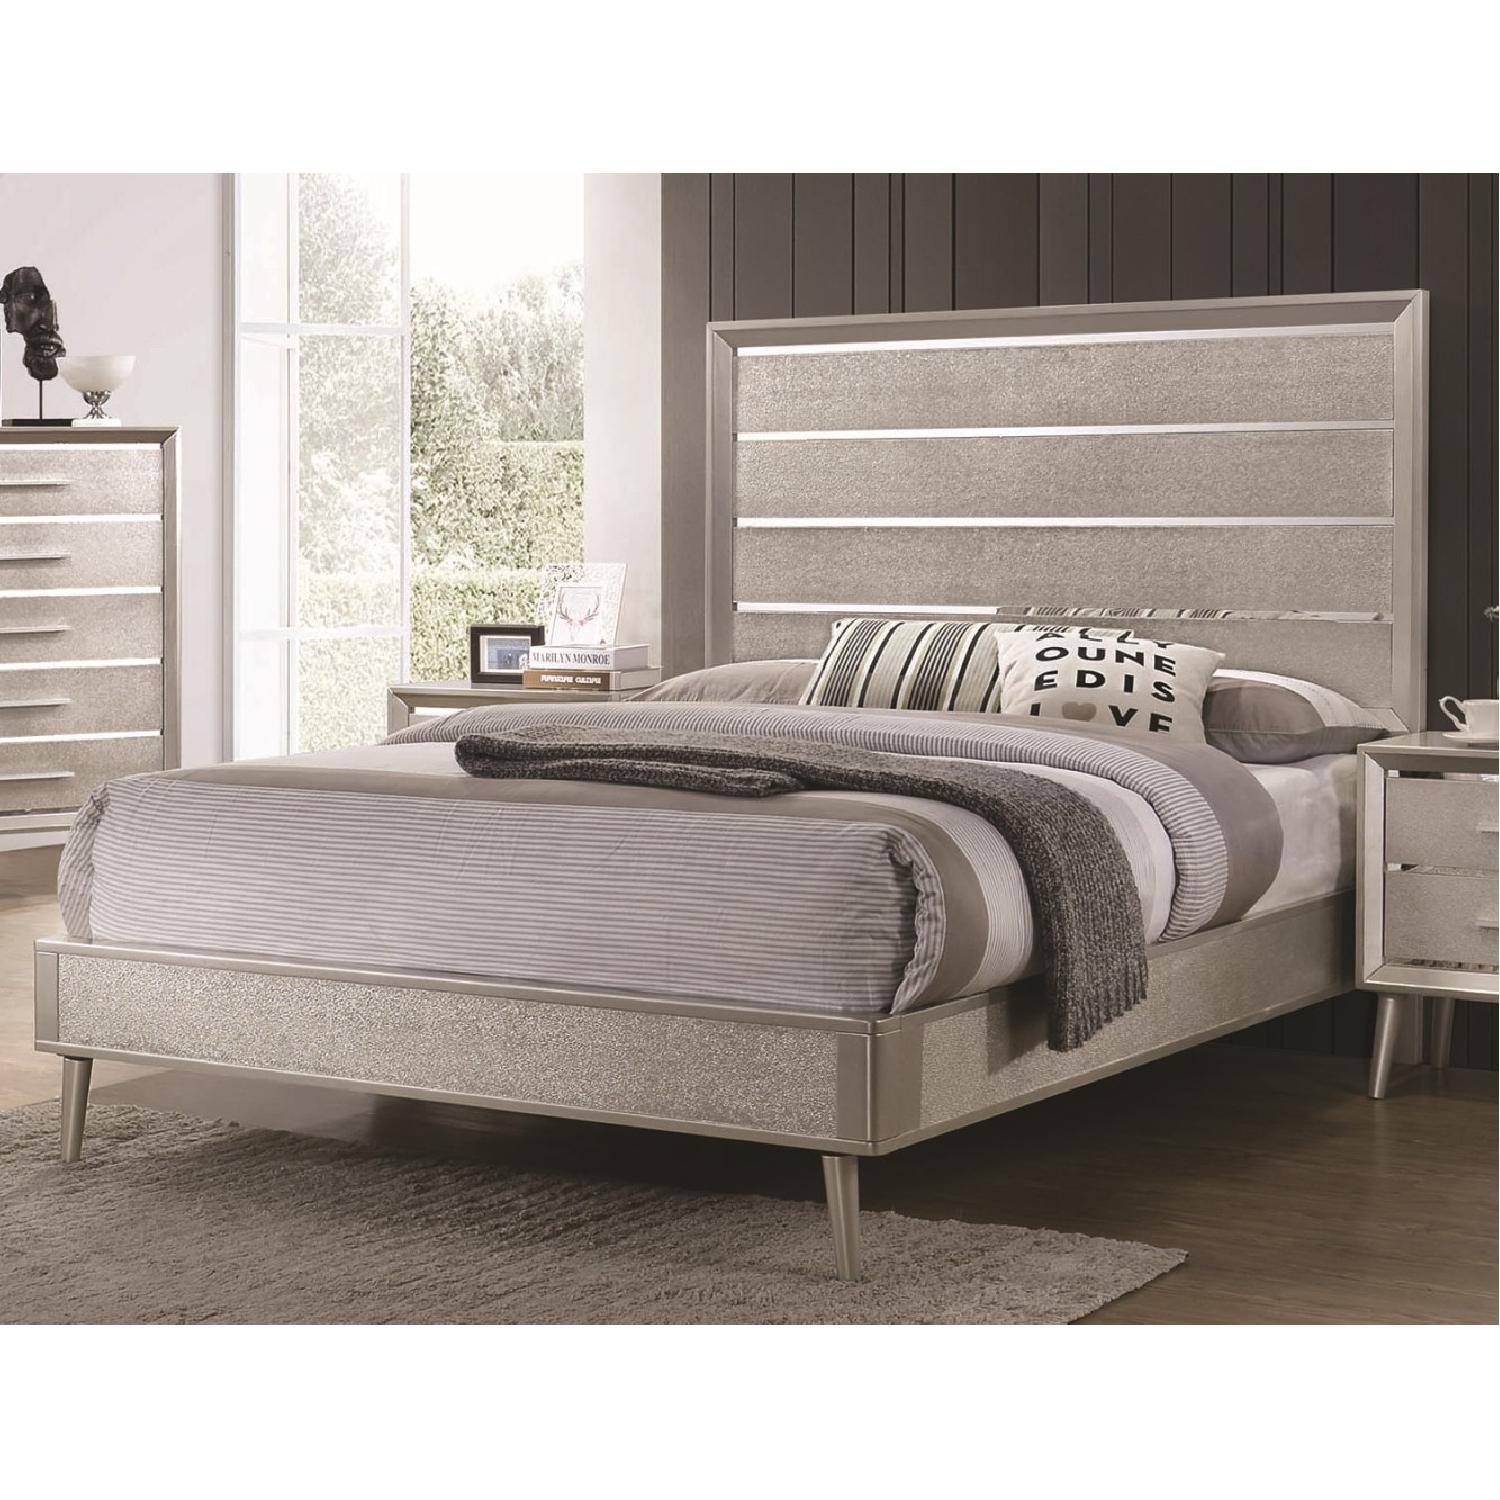 Mid Century Style Full Bed in Metallic Silver Glitter Design - image-4